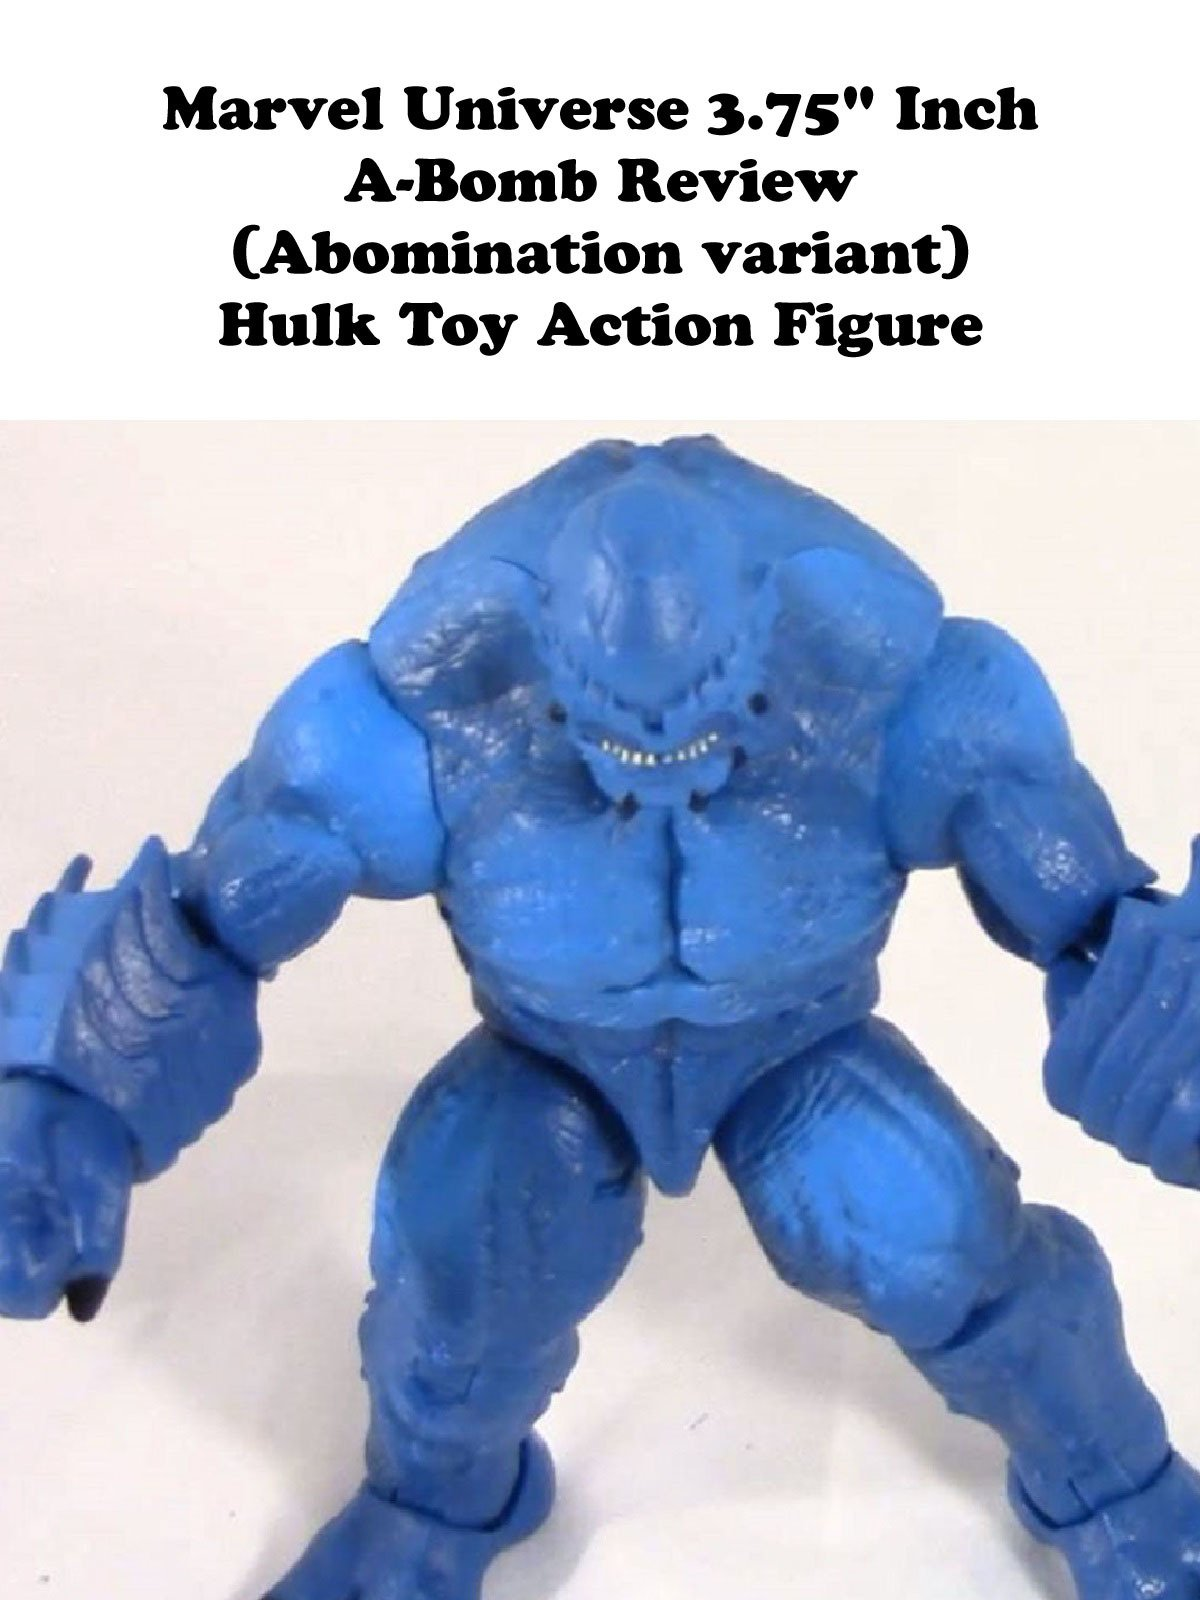 "Review: Marvel Universe 3.75"" Inch A-Bomb Review (Abomination variant) Hulk Toy Action Figure"